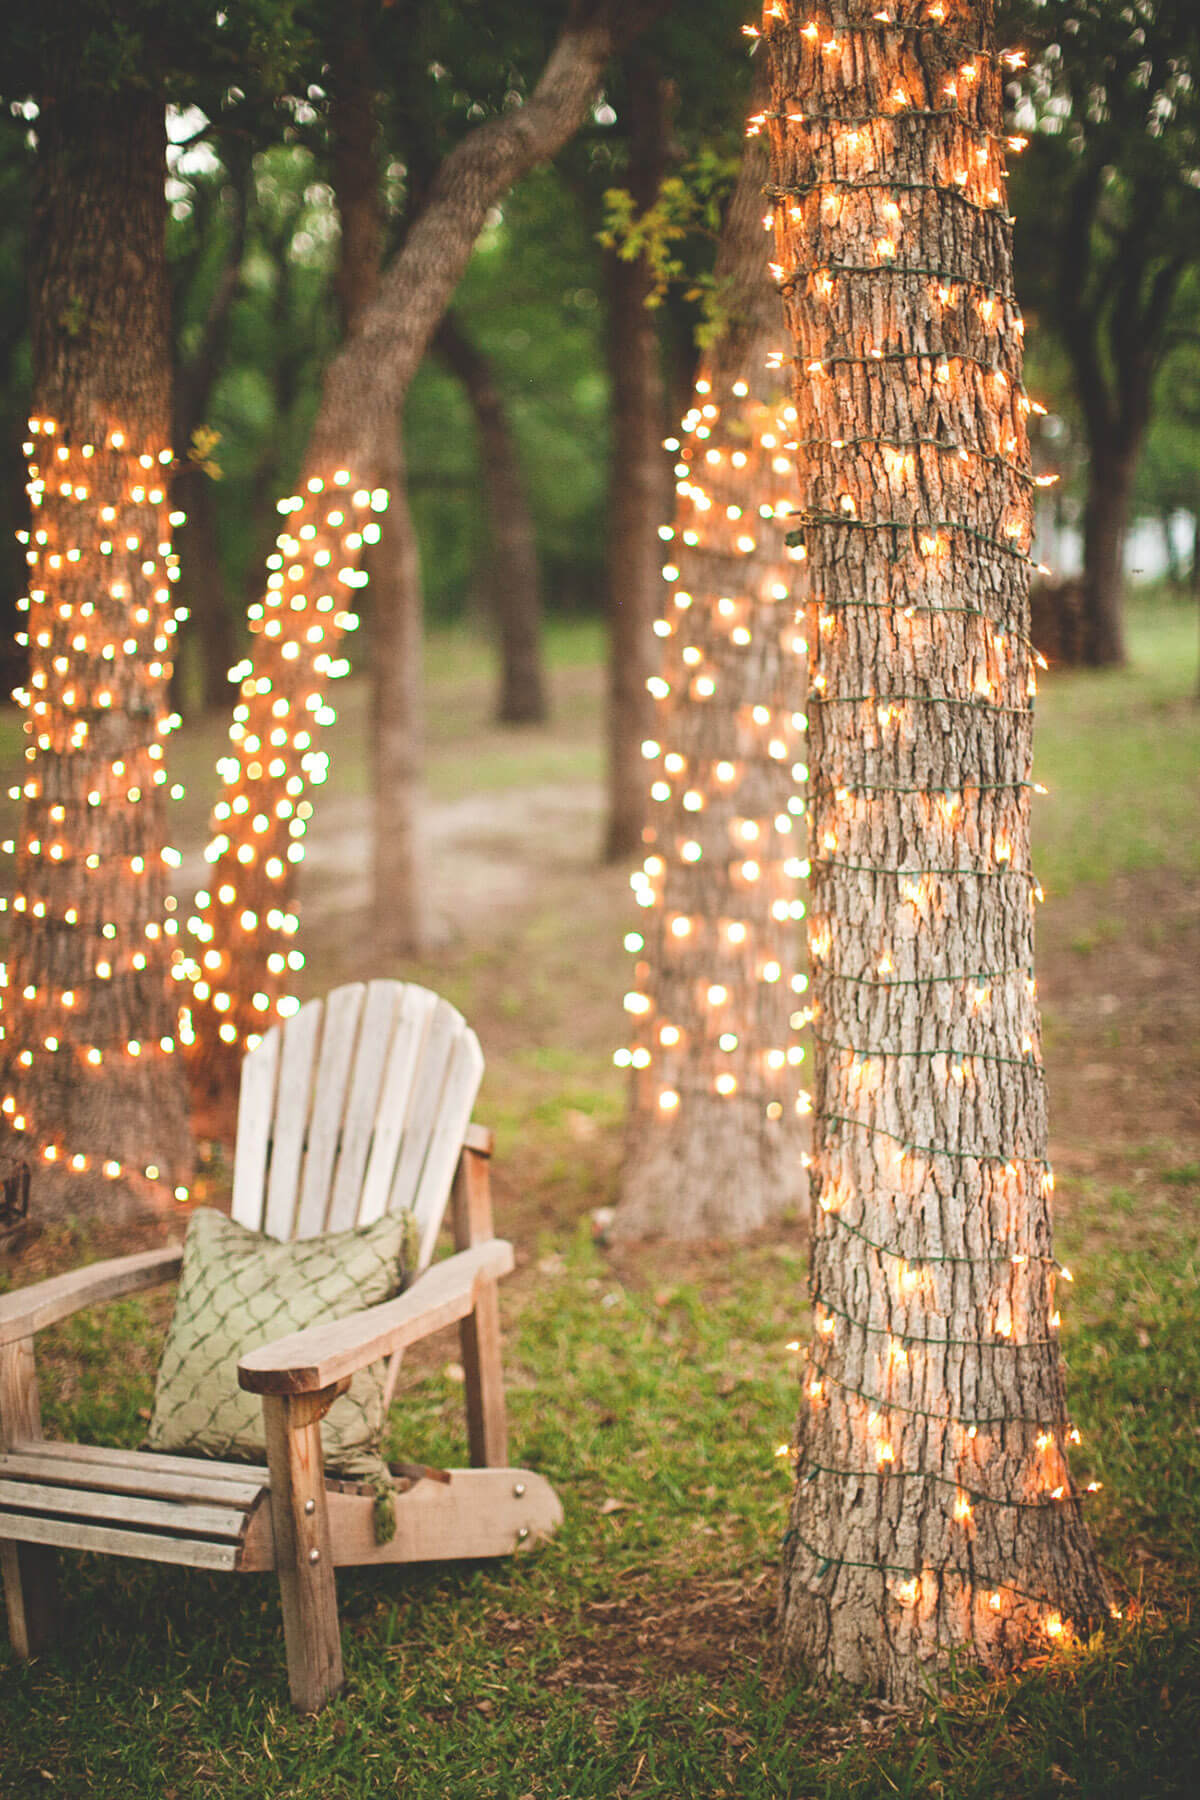 Tree Trunks Wrapped In String Lights